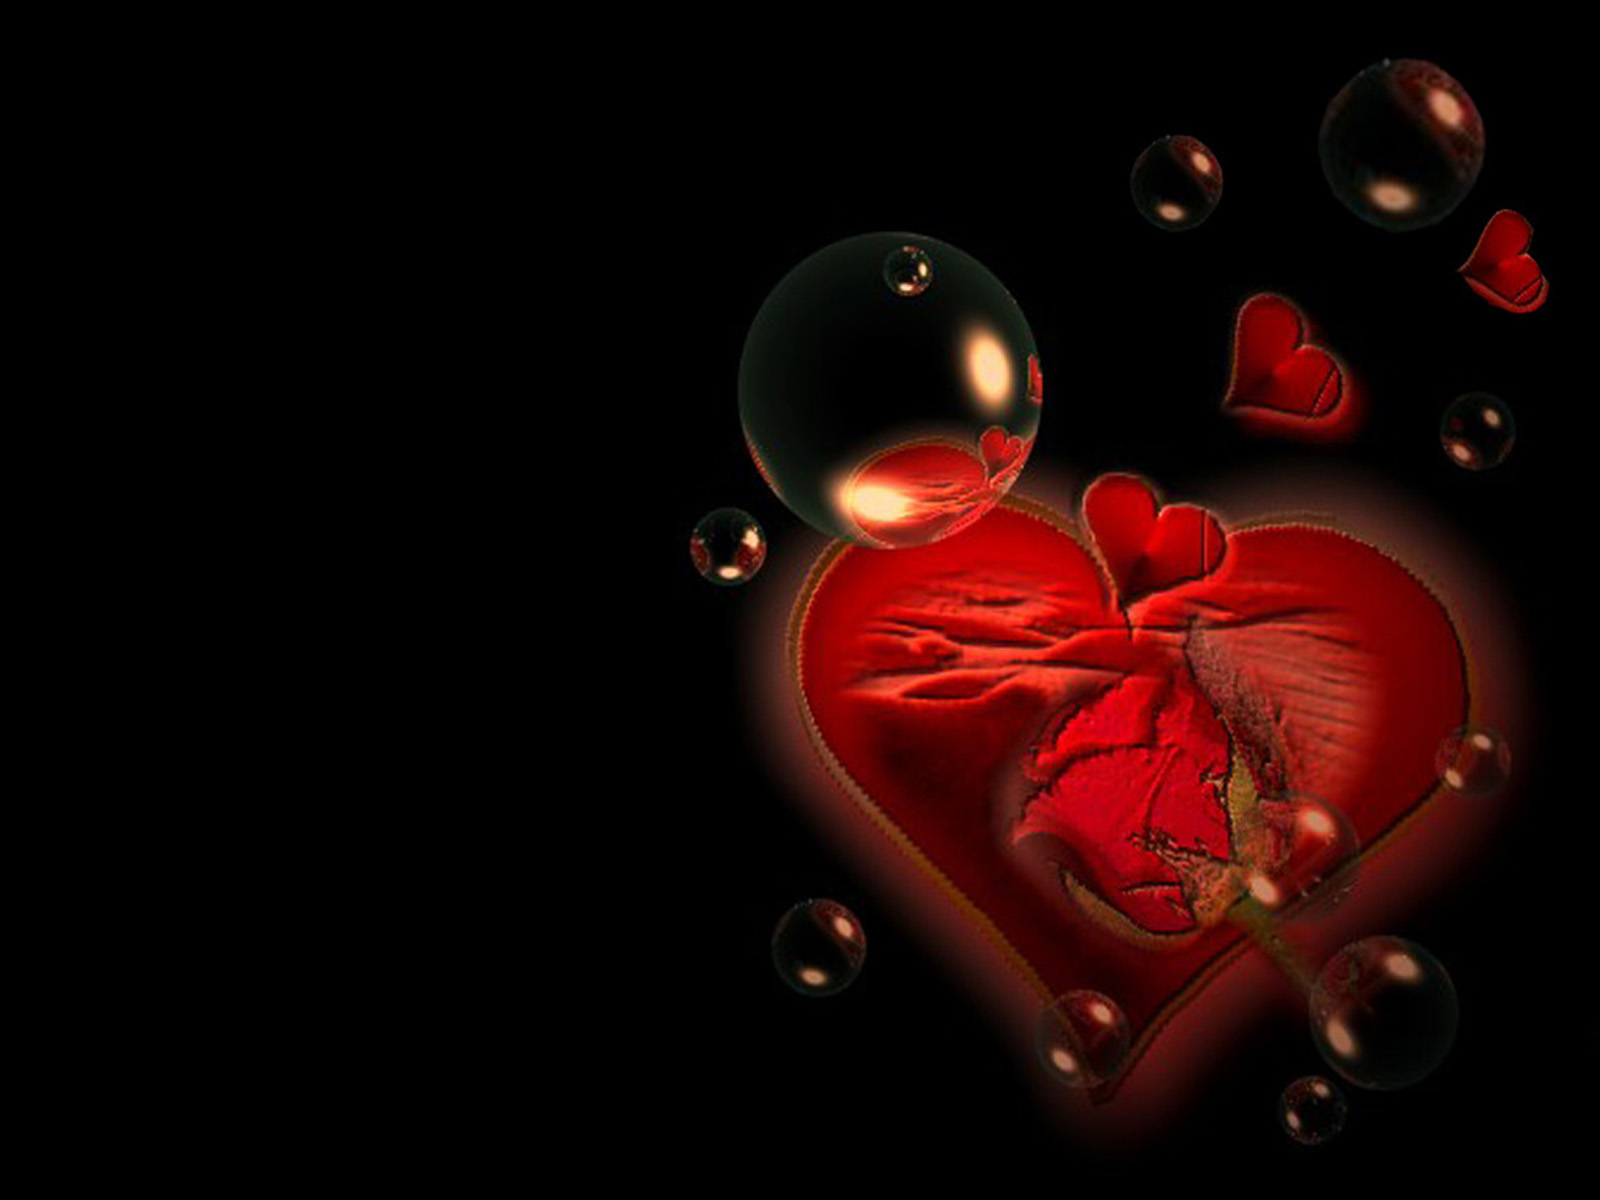 3d Heart Love Wallpapers 4852 Wallpaper: HD Wallpapers: 3D Love Pictures And Wallpapers